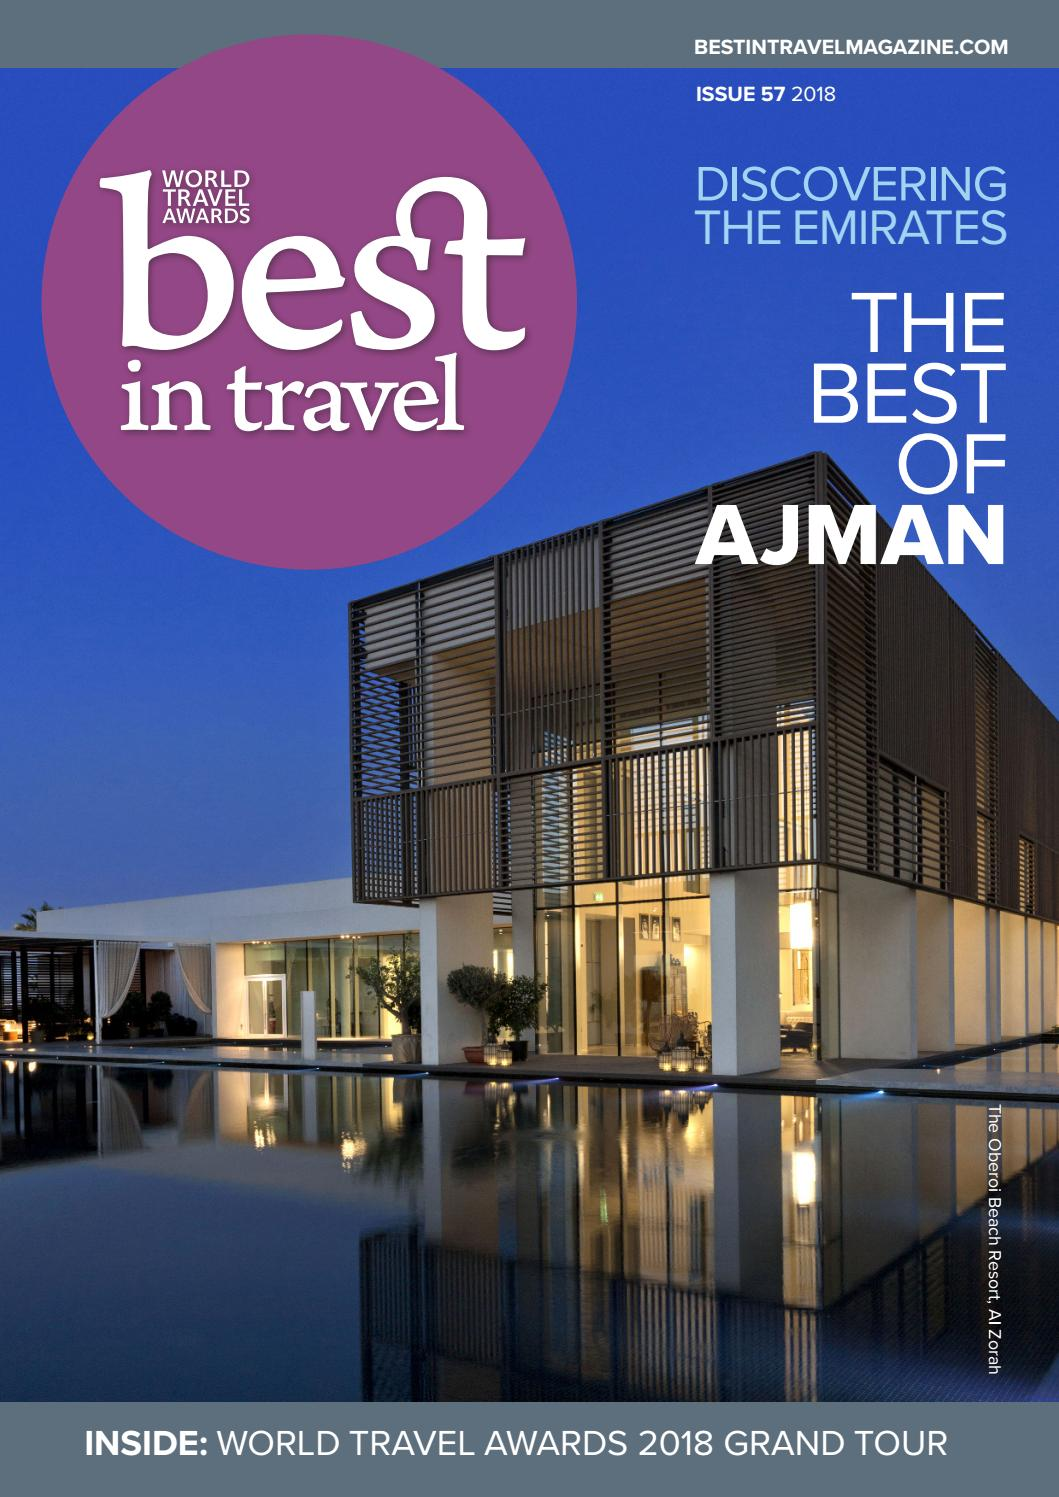 Best In Travel Magazine Issue 57 2018 Discover Ajman Uae By Best In Travel Magazine Issuu Webster groves newest sushi station restaurant located in the historic district known as old copyright © 2020 sushi station. best in travel magazine issue 57